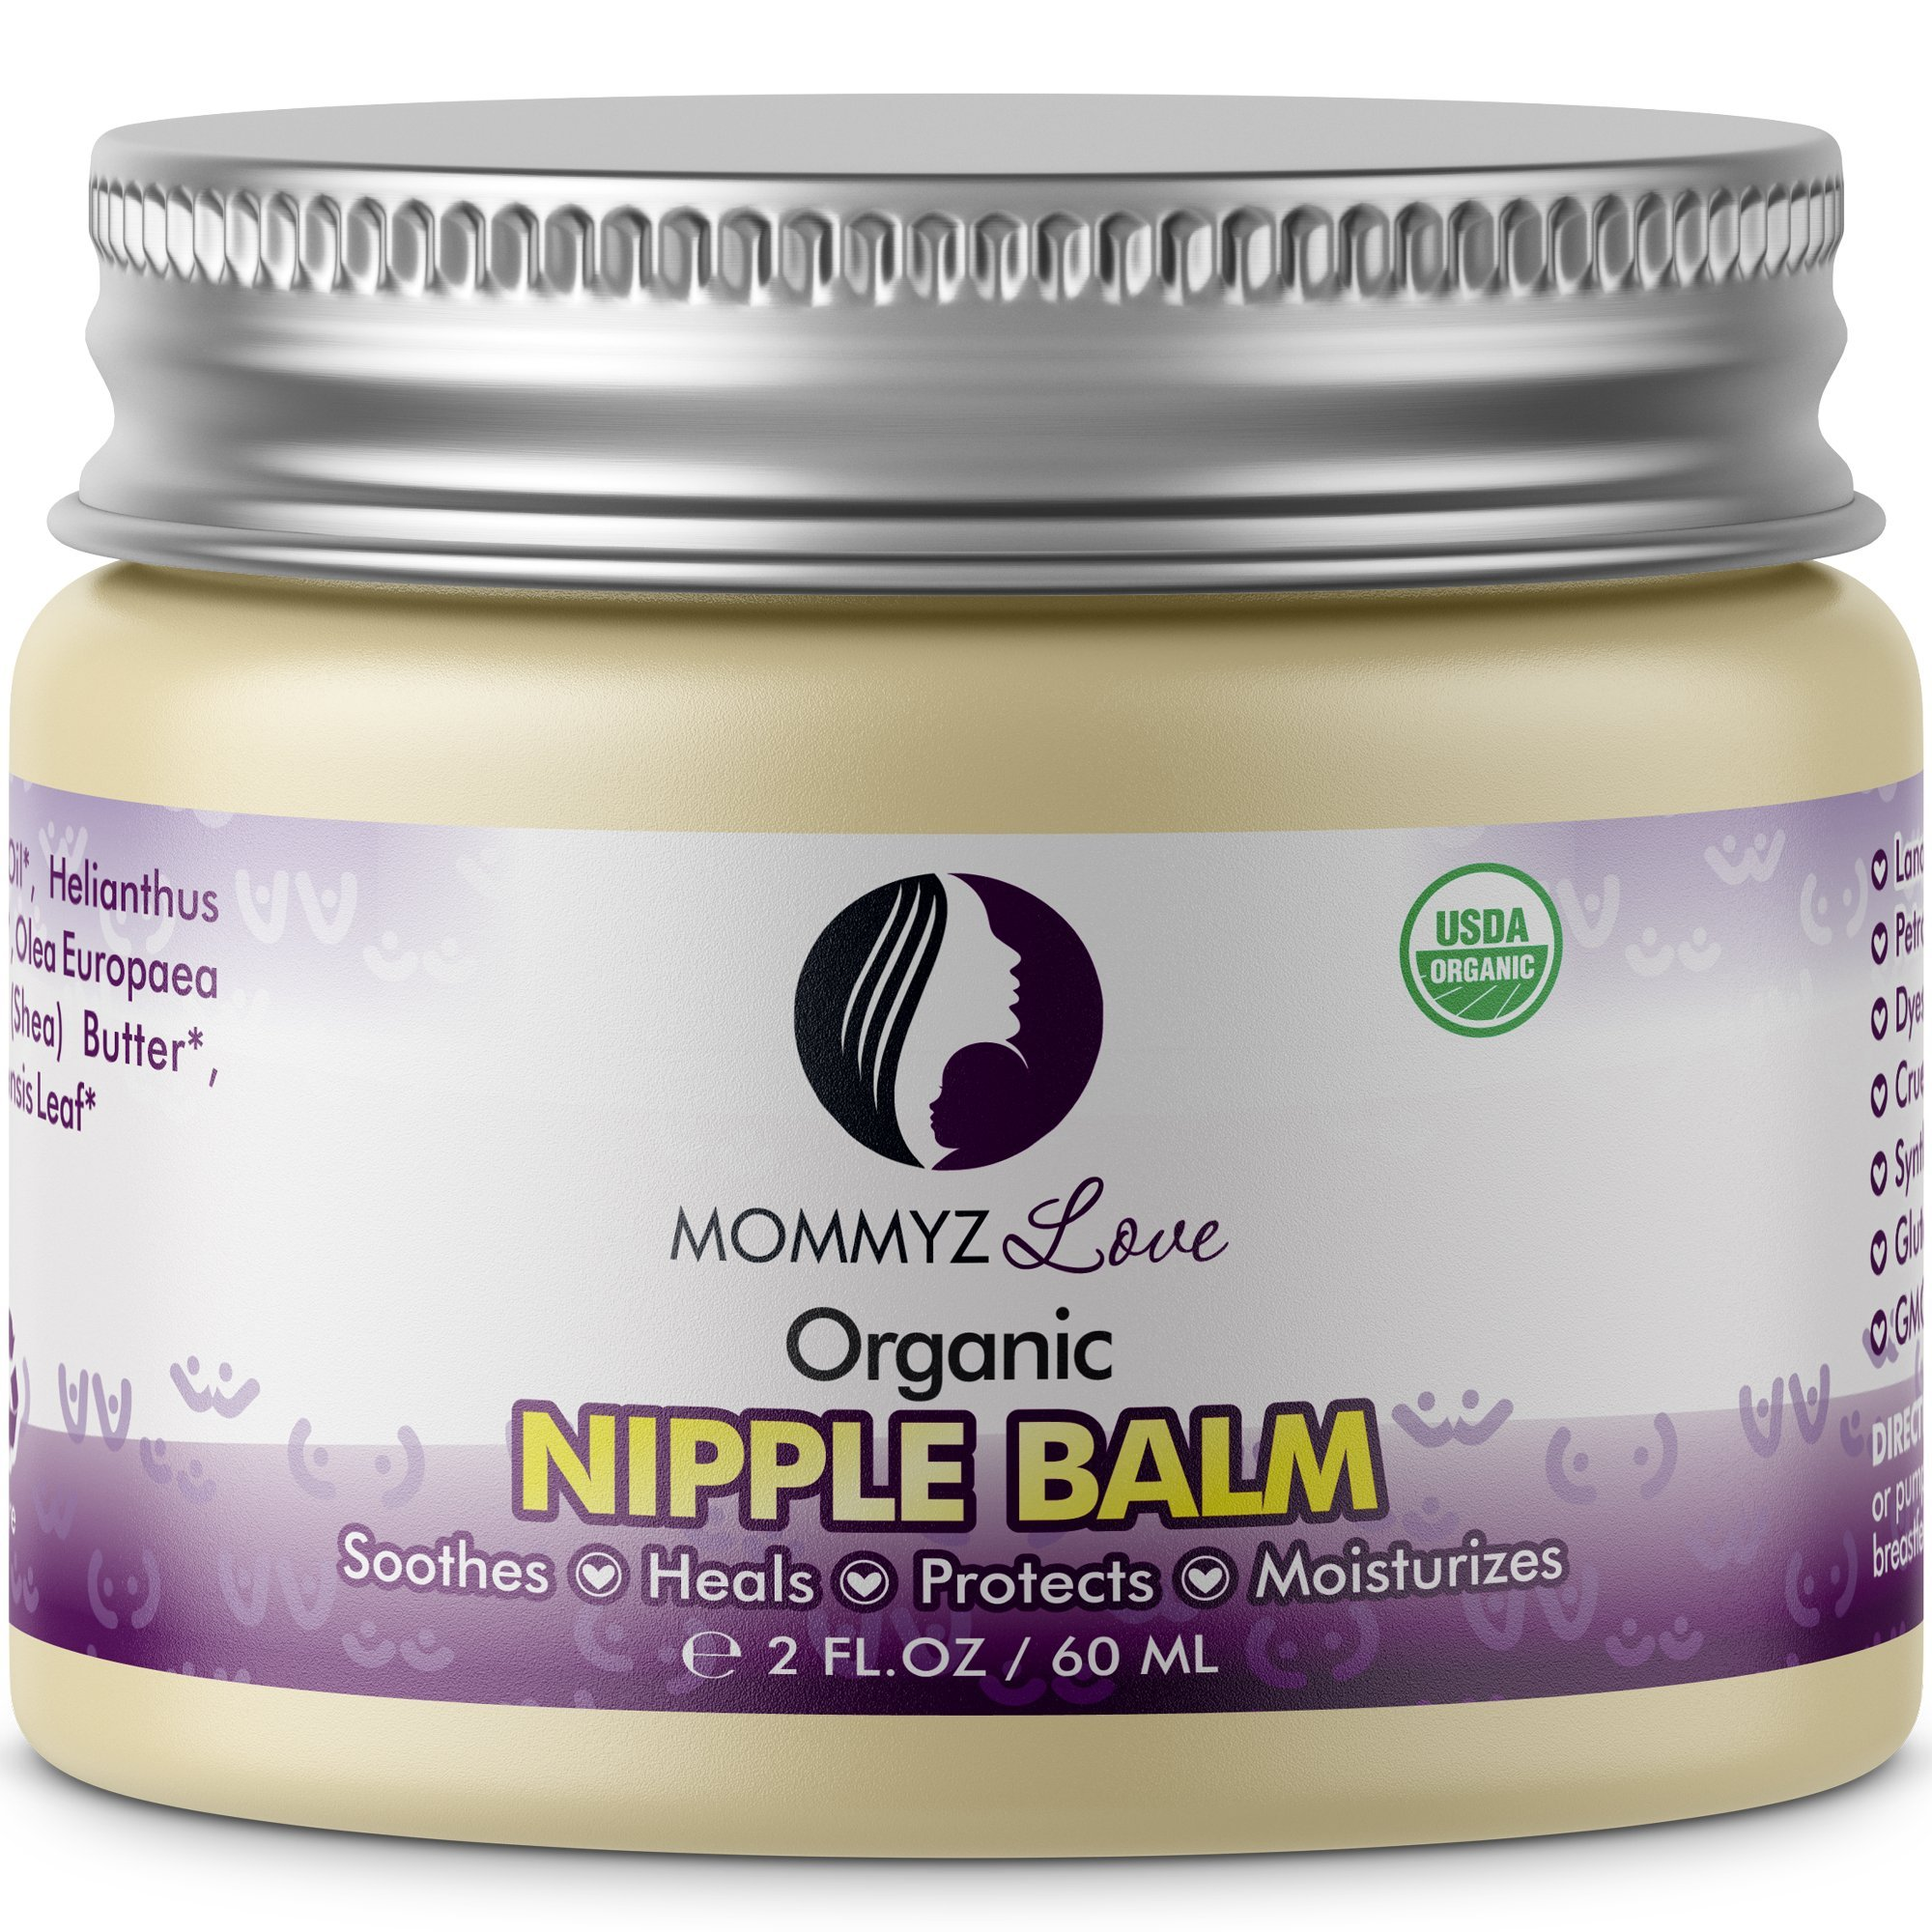 Best Nipple Cream for Breastfeeding Relief (2 oz) - Provides Immediate Relief To Sore, Dry And Cracked Nipples Even After A Single Use - PEDIATRICIAN TESTED - USDA Certified Organic (1 Jar)